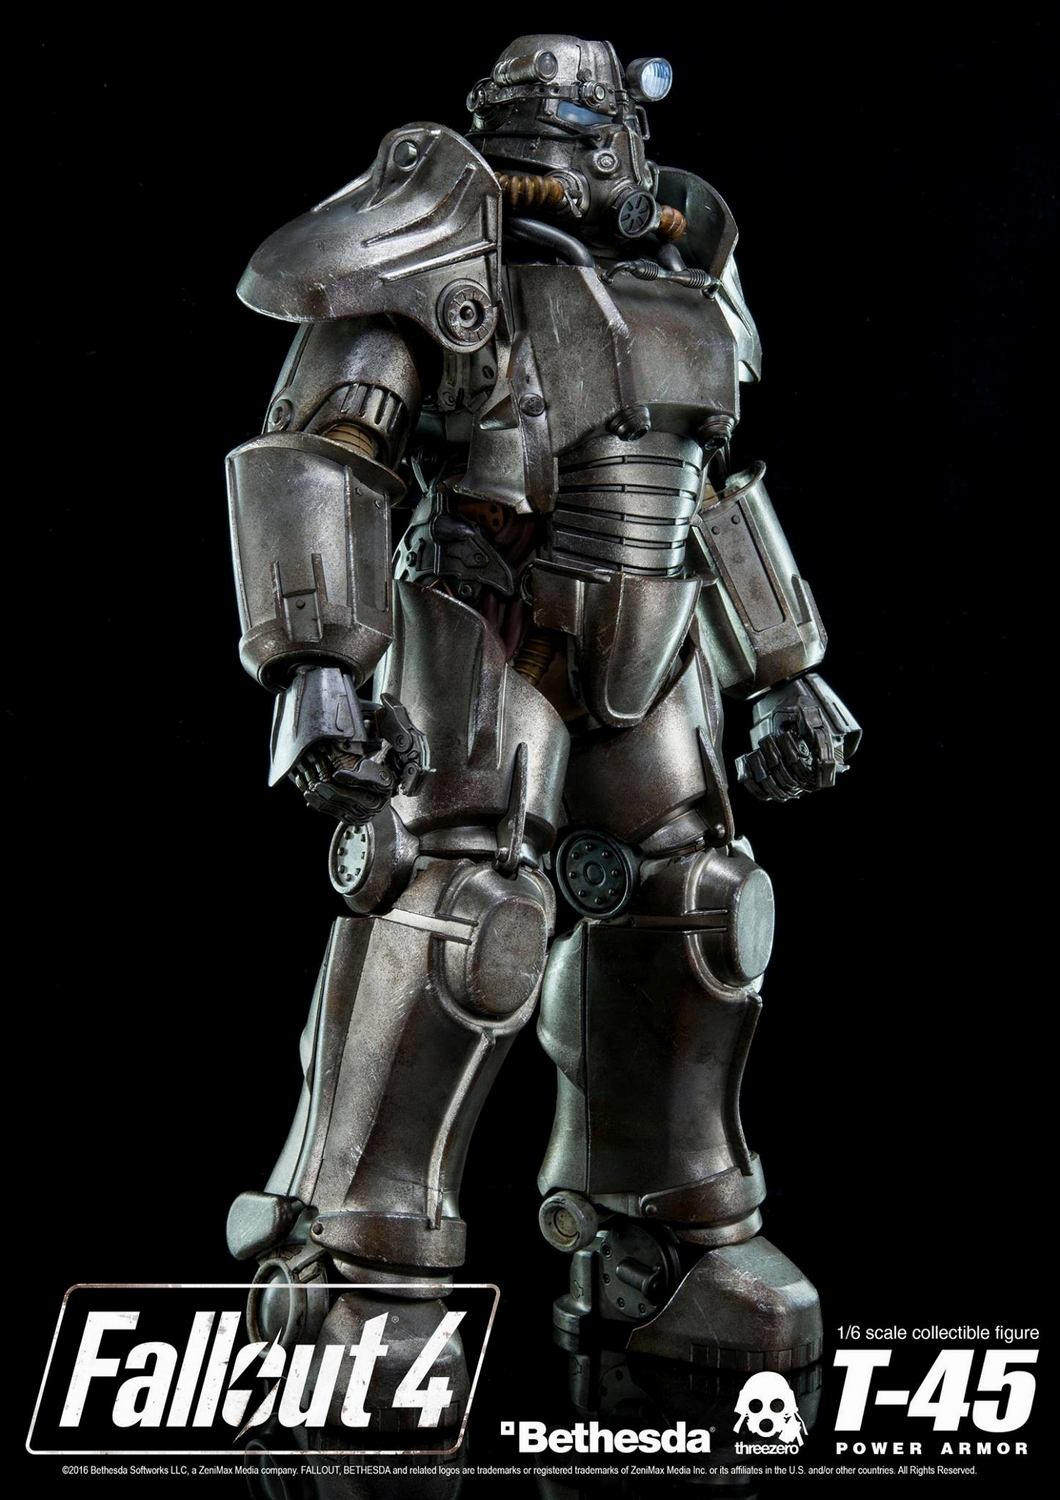 COOL TOY REVIEW Your Source For Action Figure Images Amp News Threezero 16th Scale Fallout 4 T